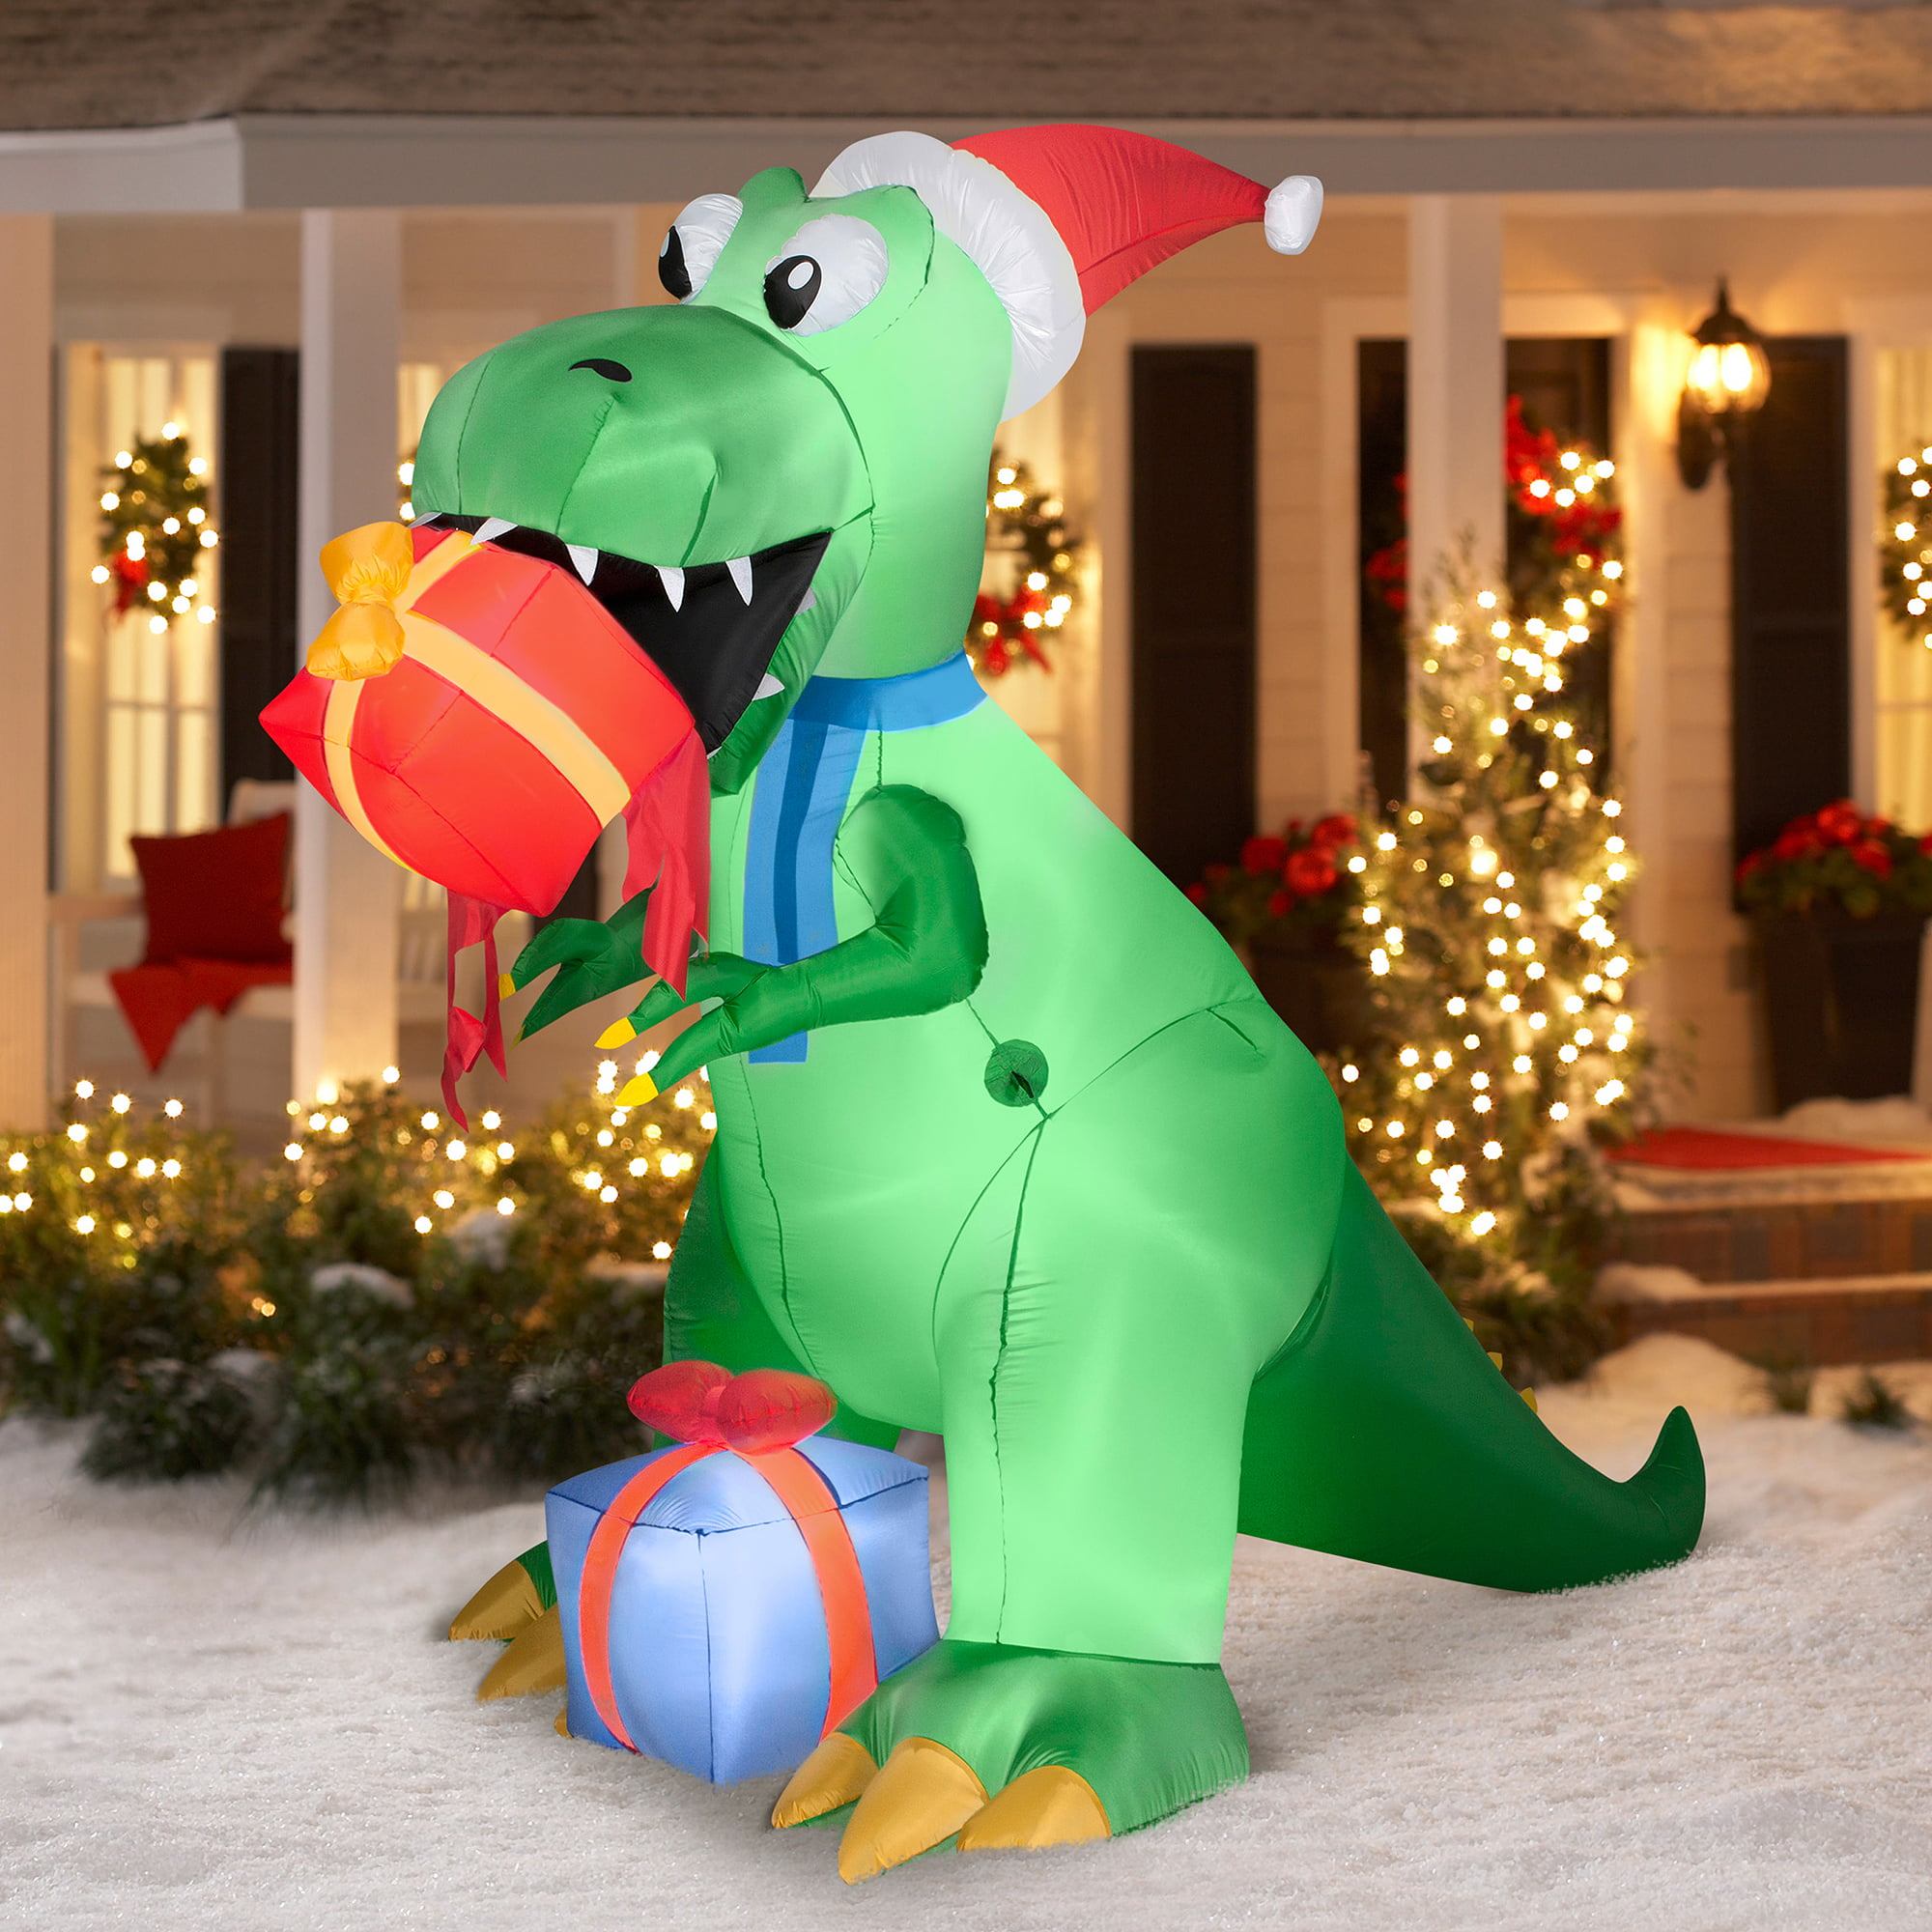 75 t rex with present airblown inflatable christmas prop walmartcom - Outdoor Blow Up Christmas Decorations